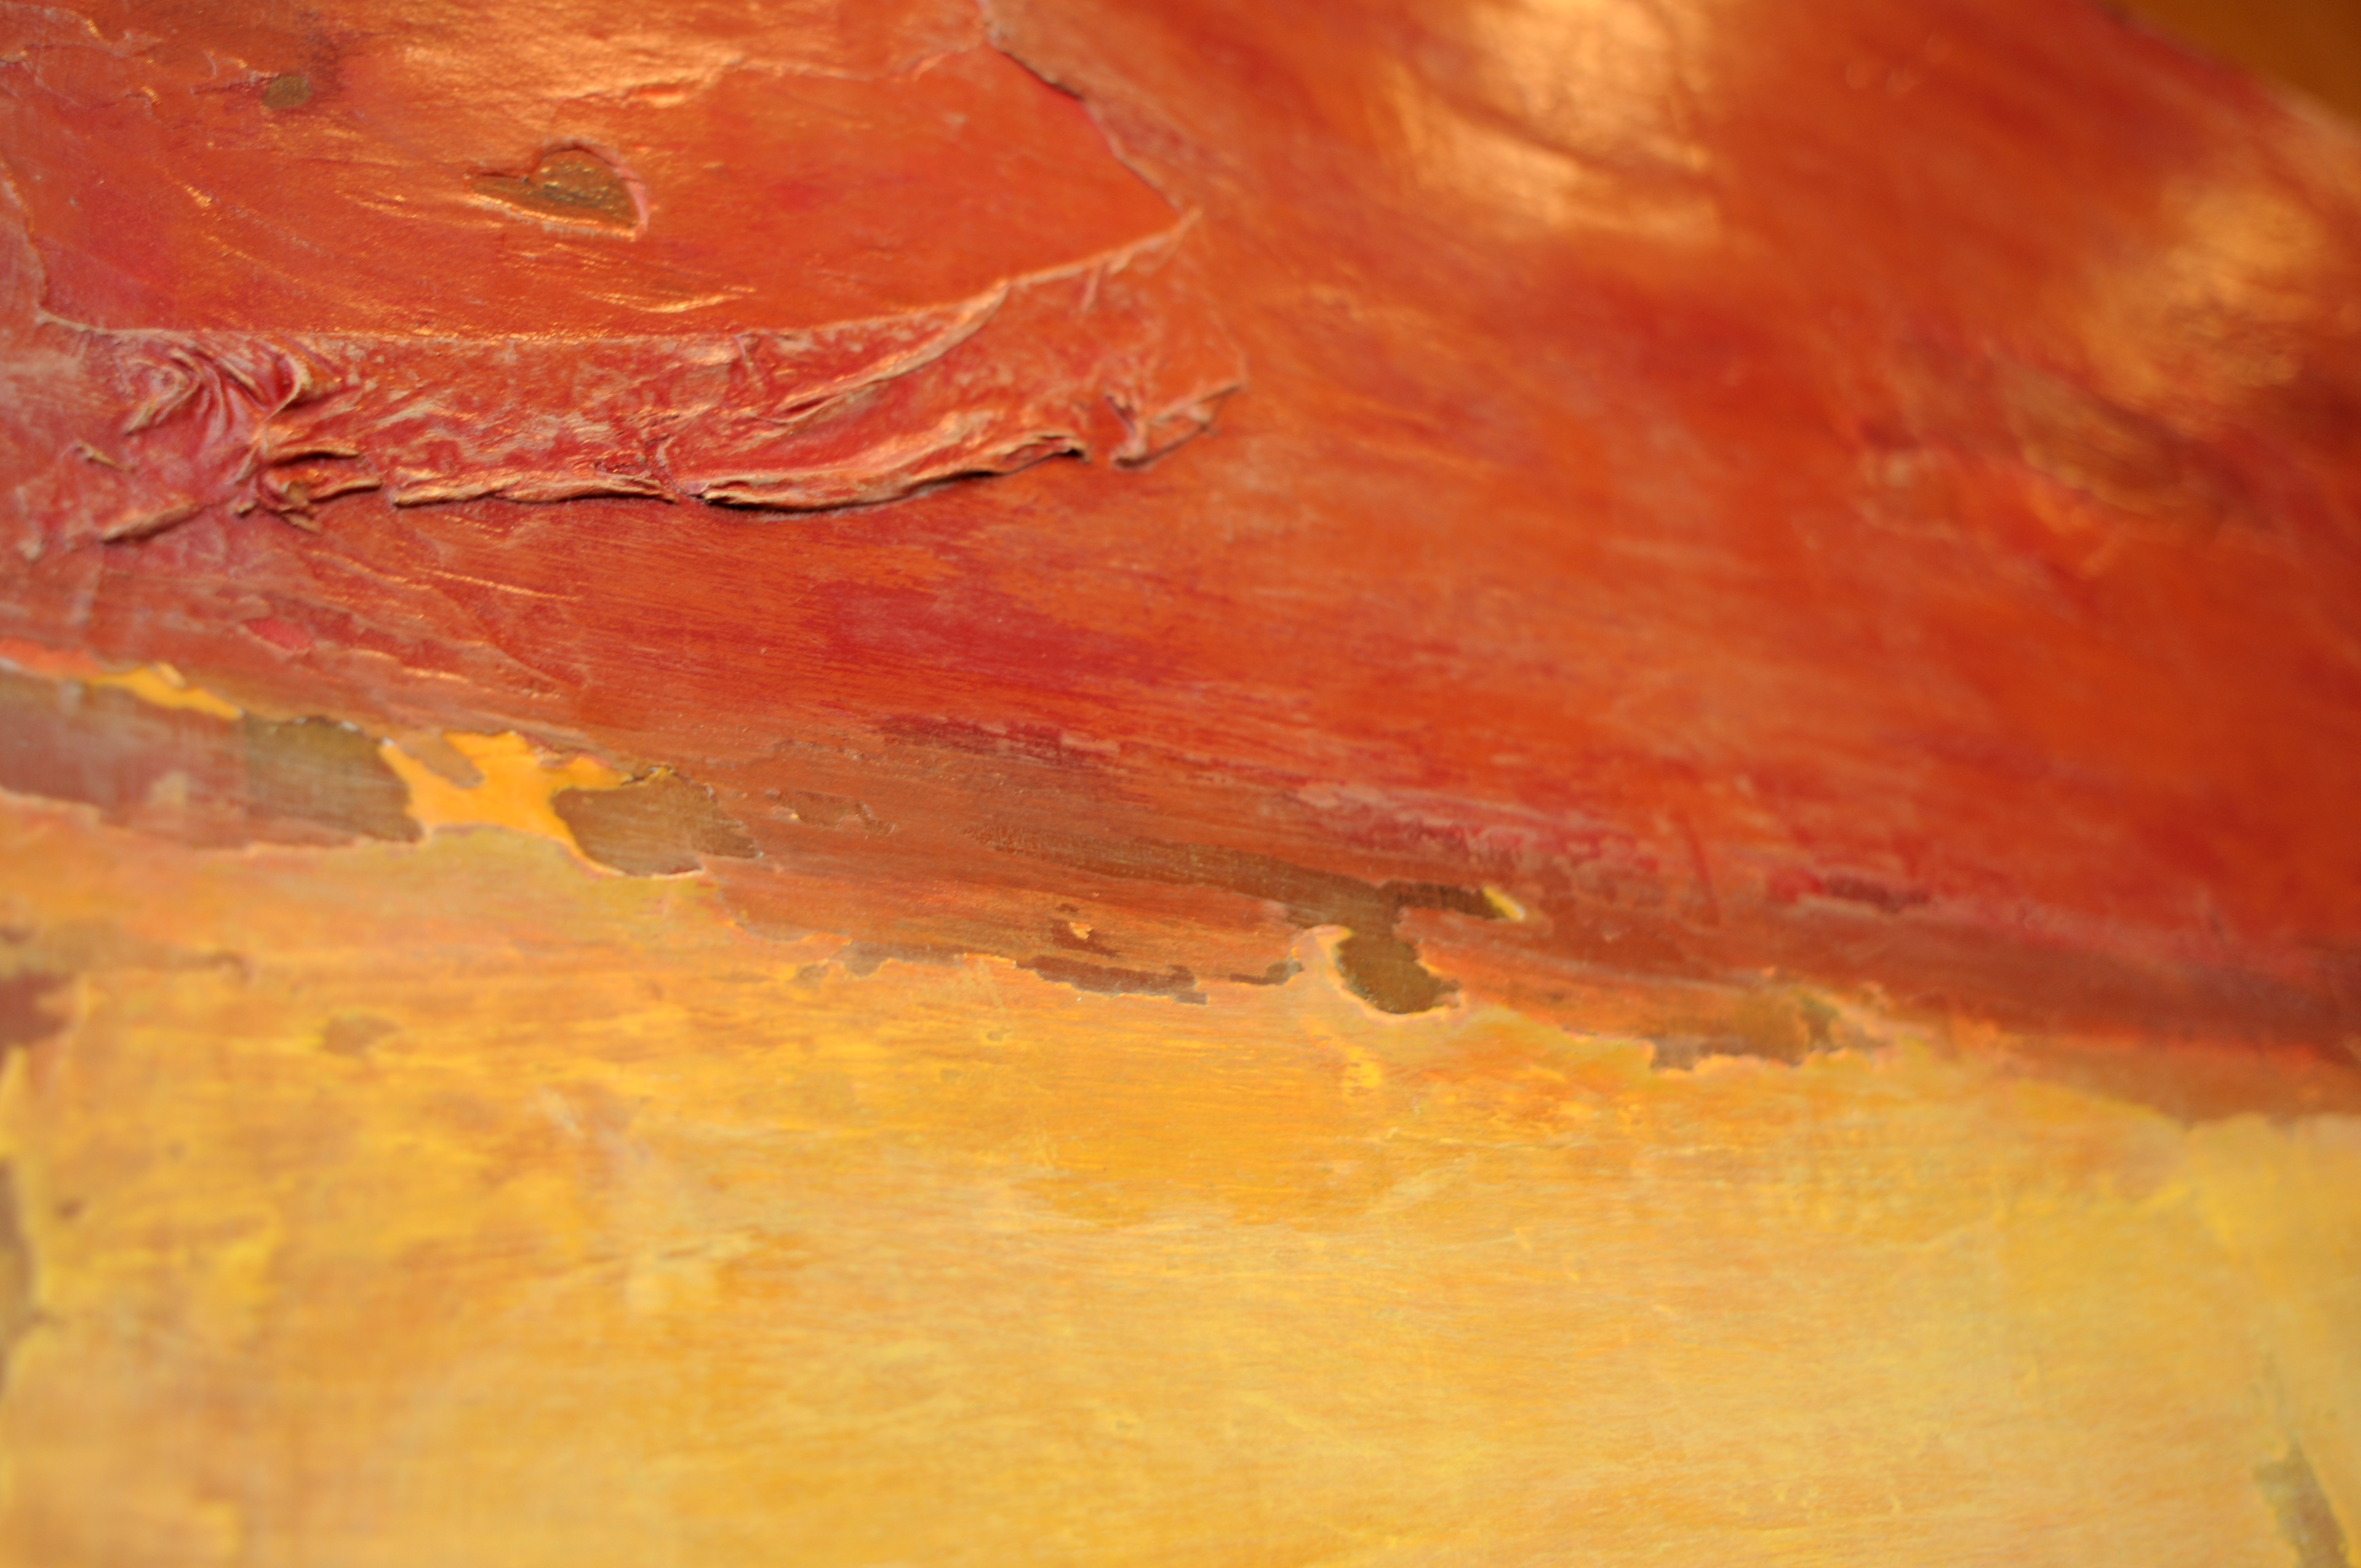 Mourao Big Erosion (detail)